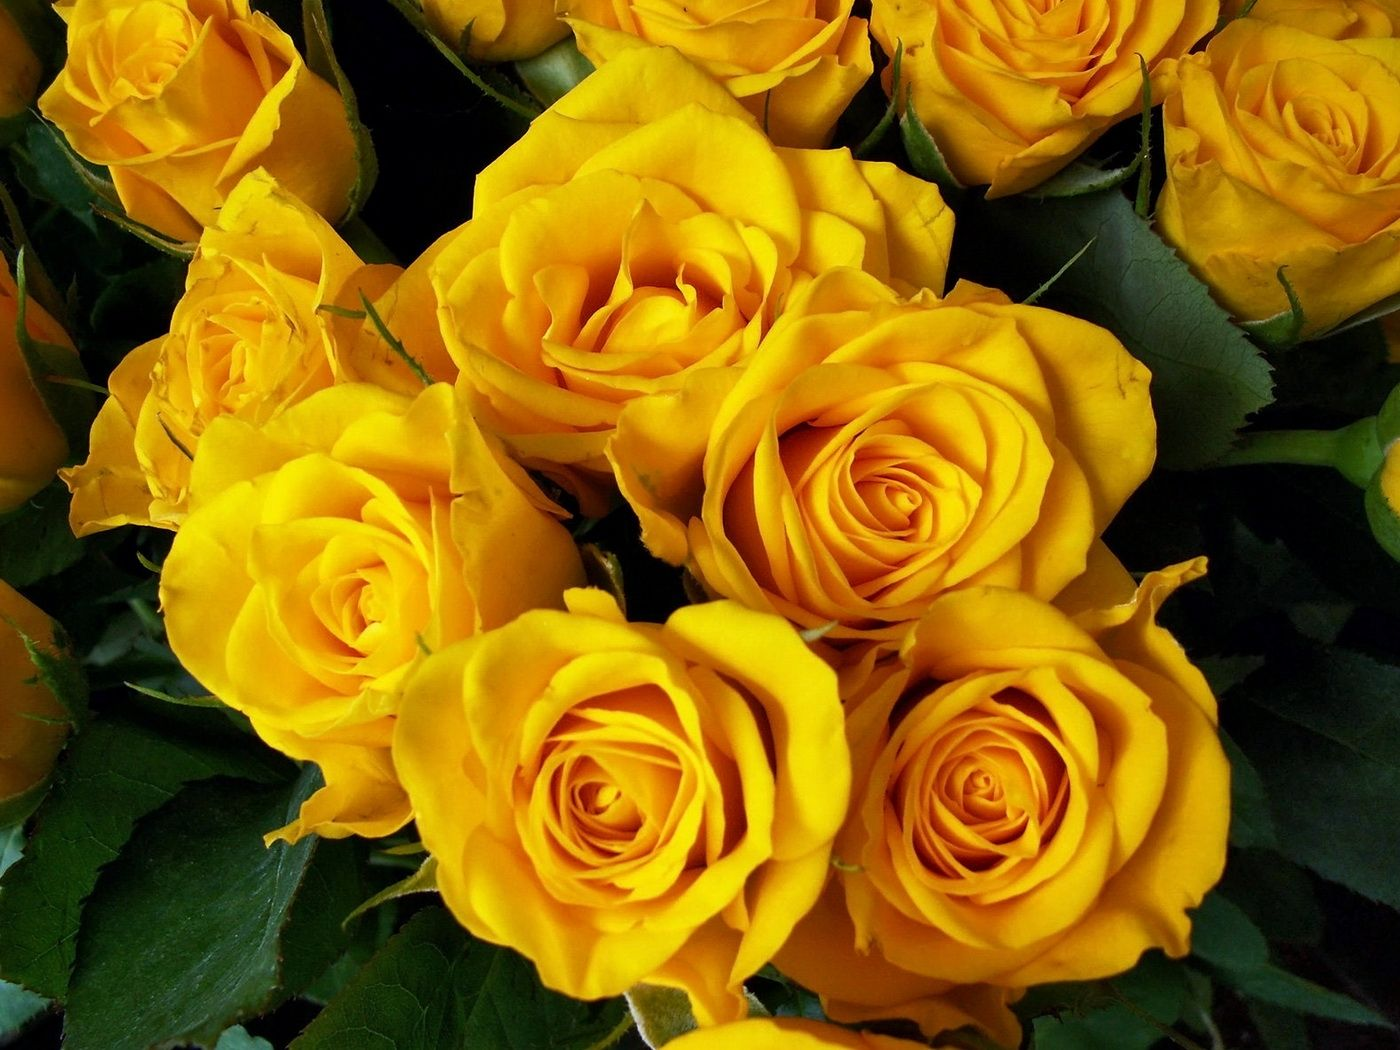 Pin by Reginald Anderson on Roses Yellow roses, Flowers